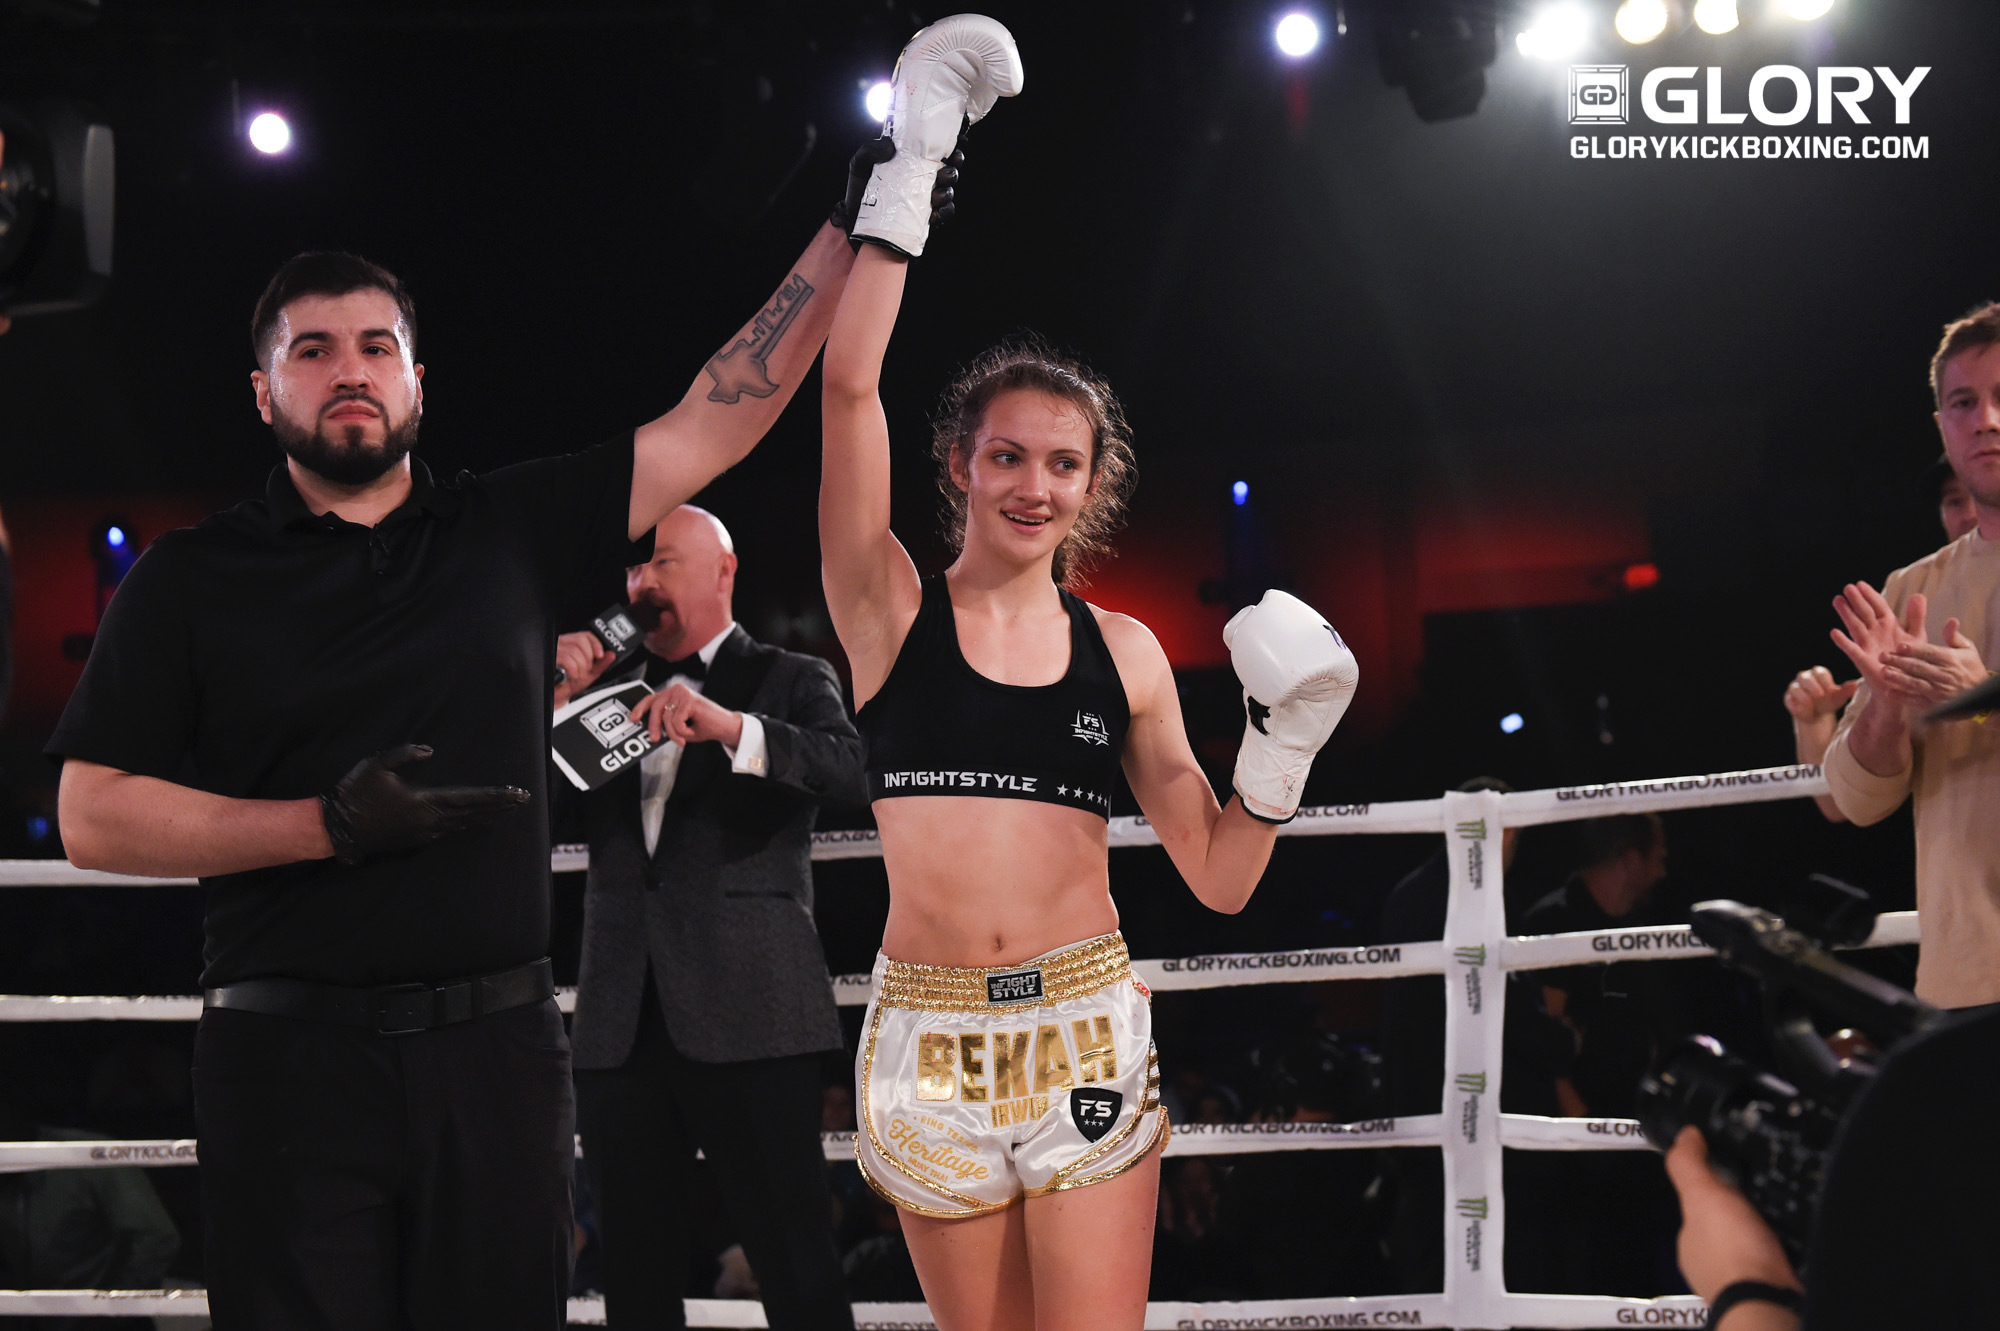 GLORY 63: Bekah Irwin Post Fight Interview